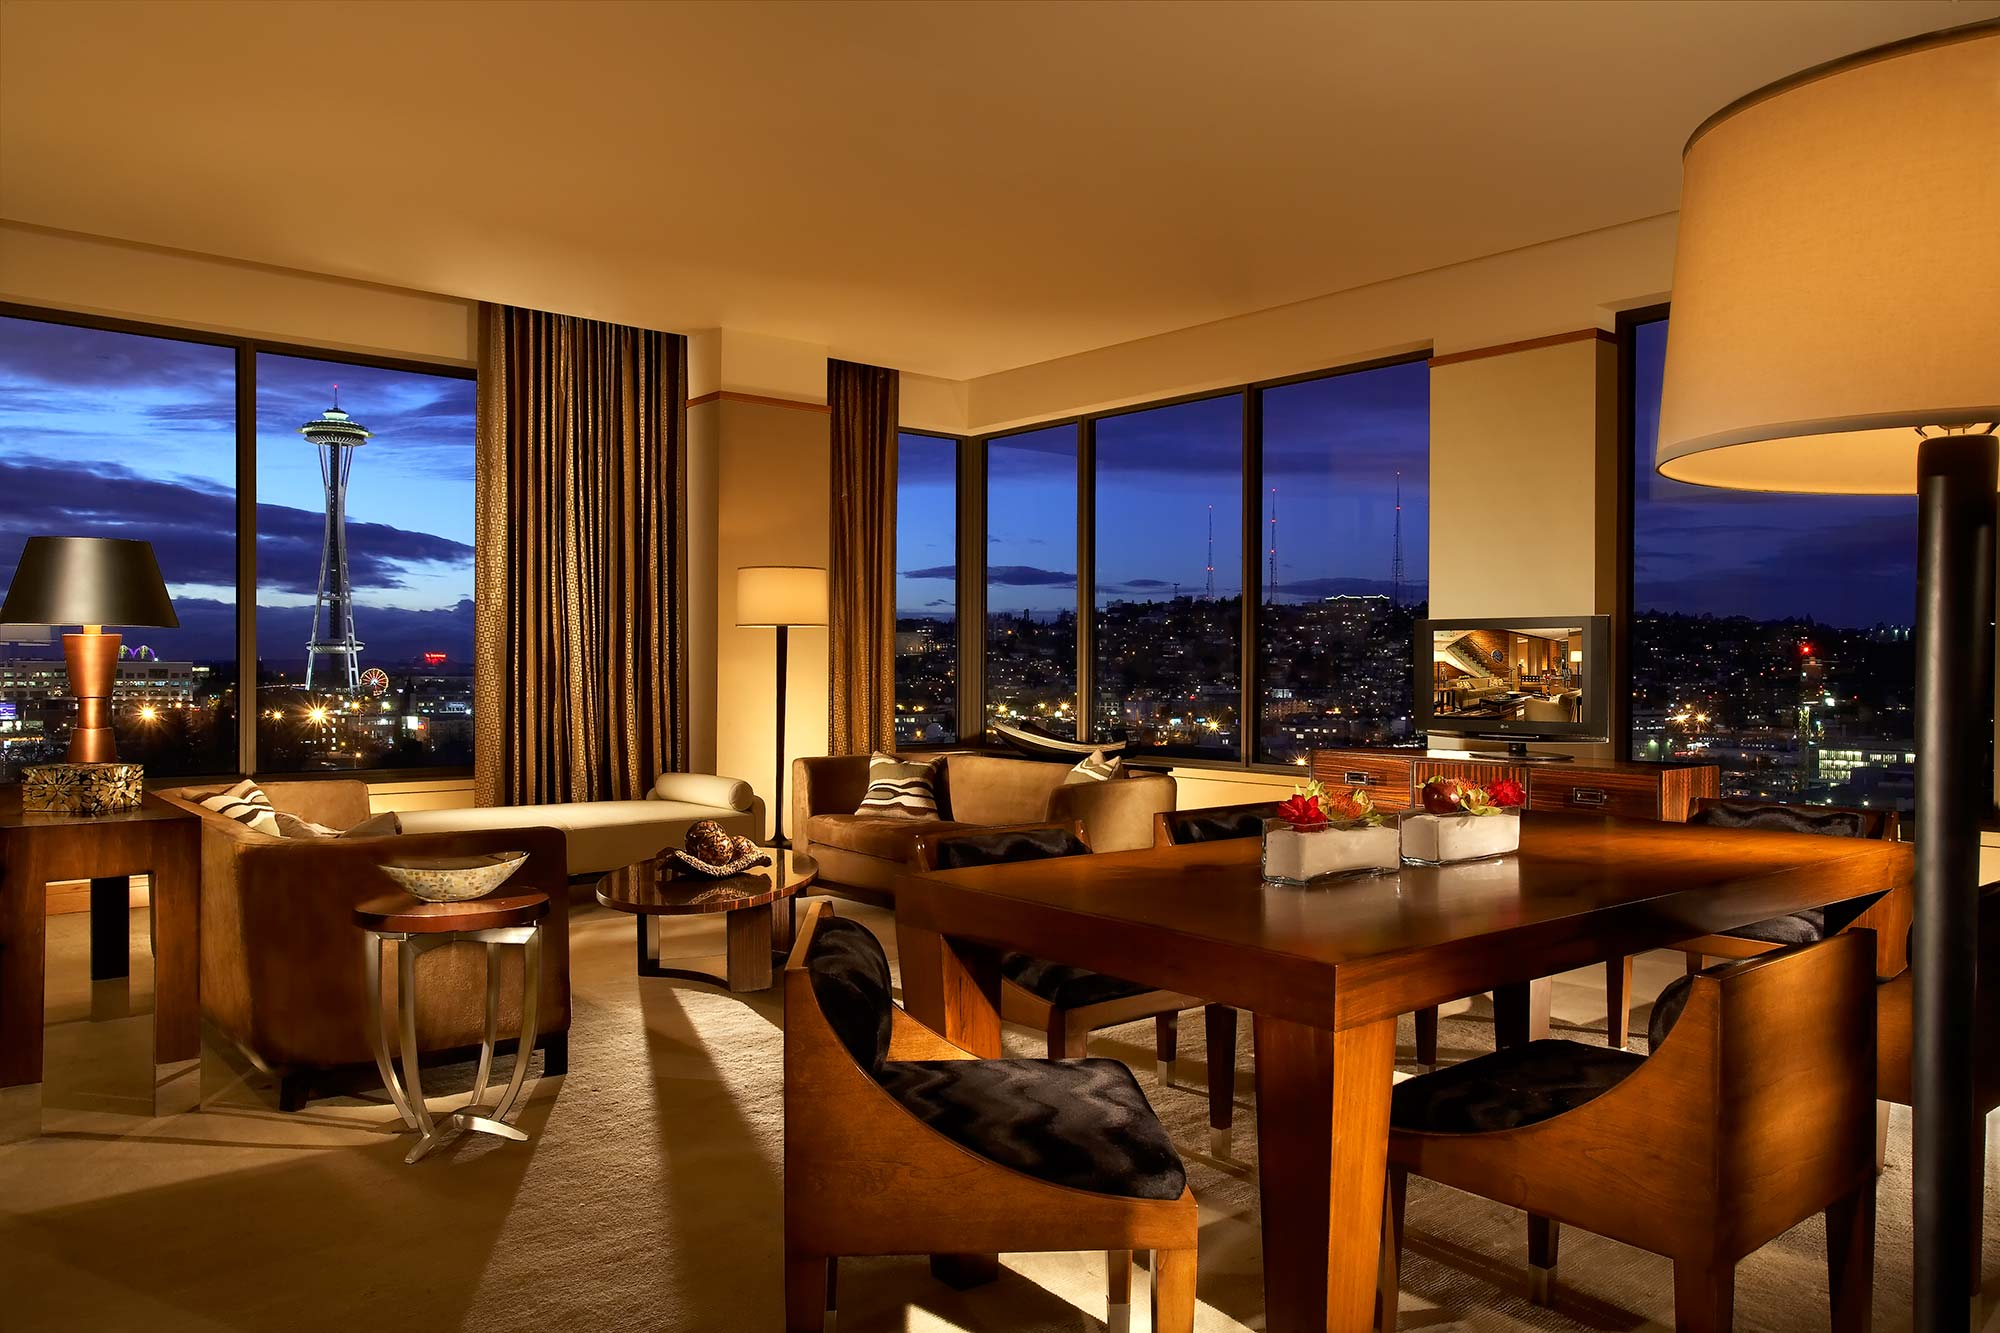 59_PanPacificHotelSeattle_Presidential_livingR